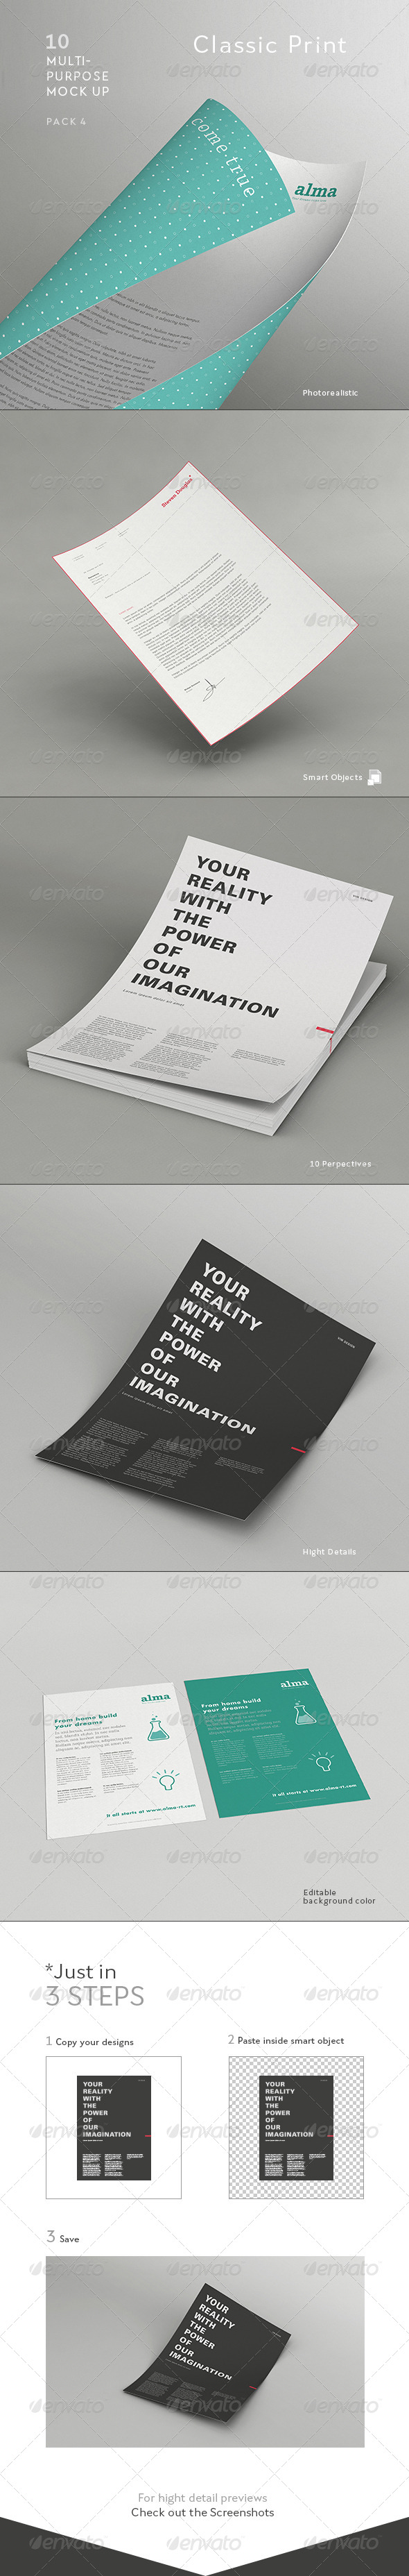 GraphicRiver Multipurpose Mock Up 4- Classic Print 4408877